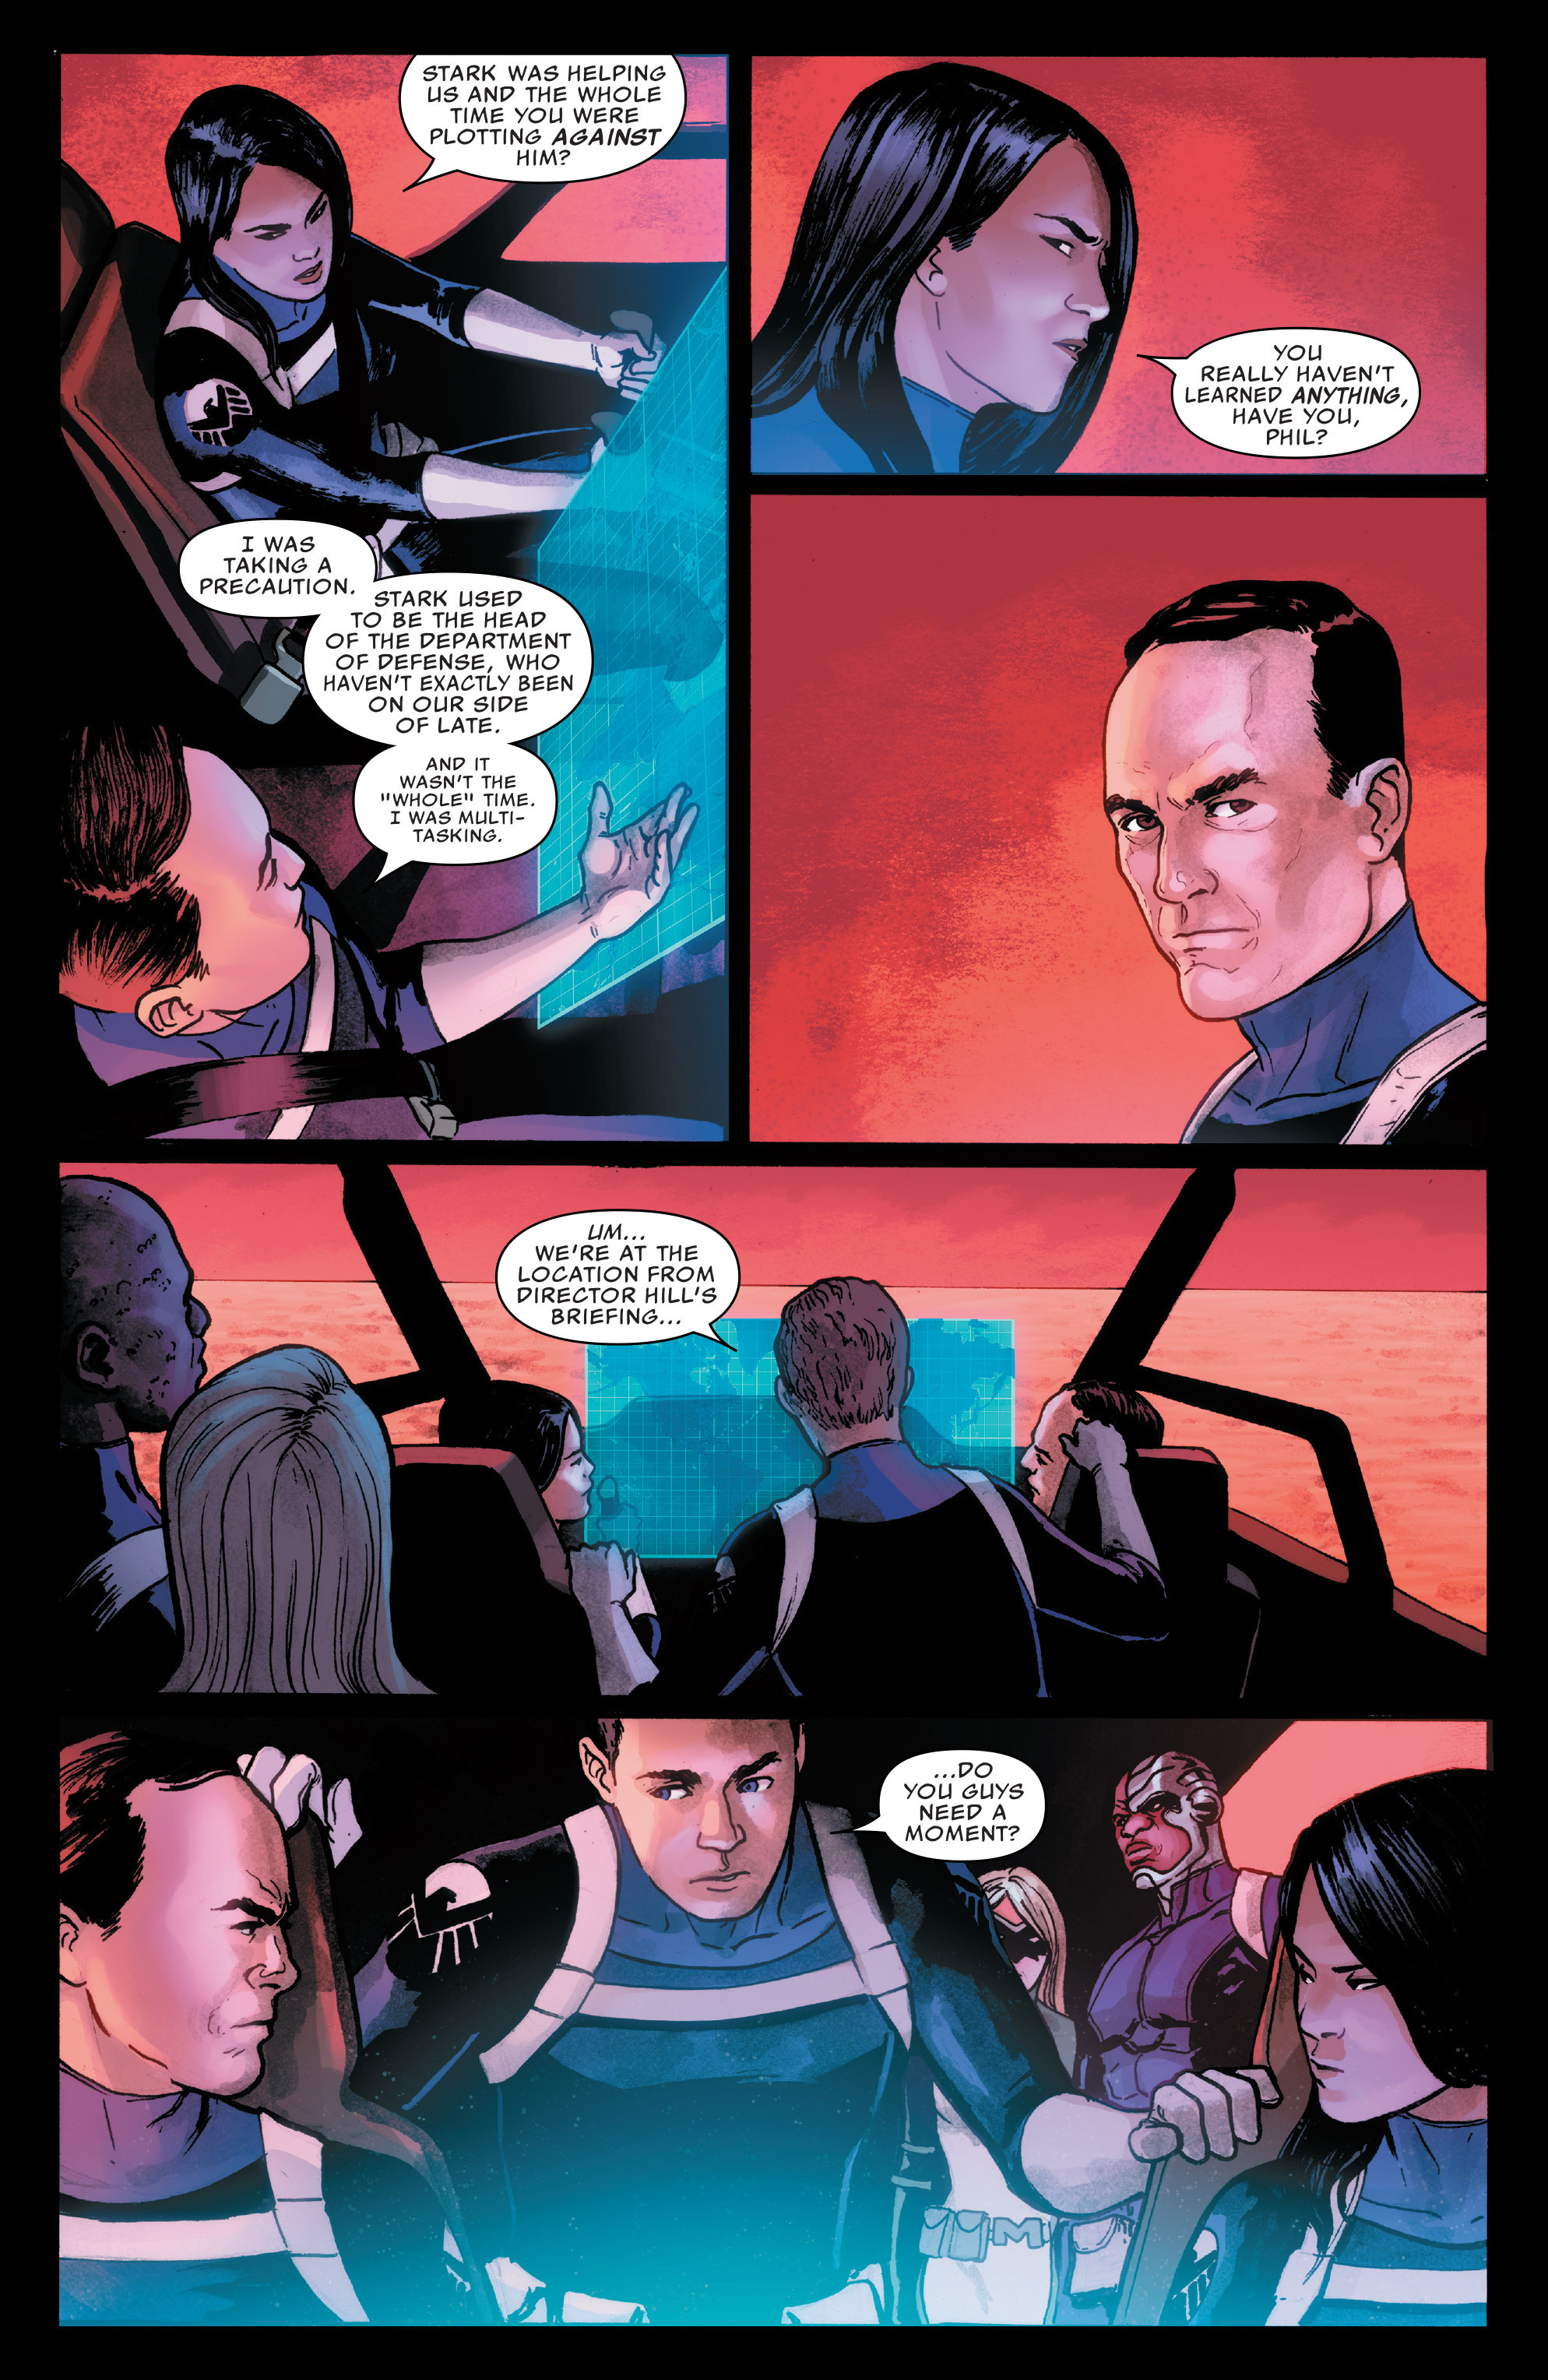 Read online Agents of S.H.I.E.L.D. comic -  Issue #7 - 10